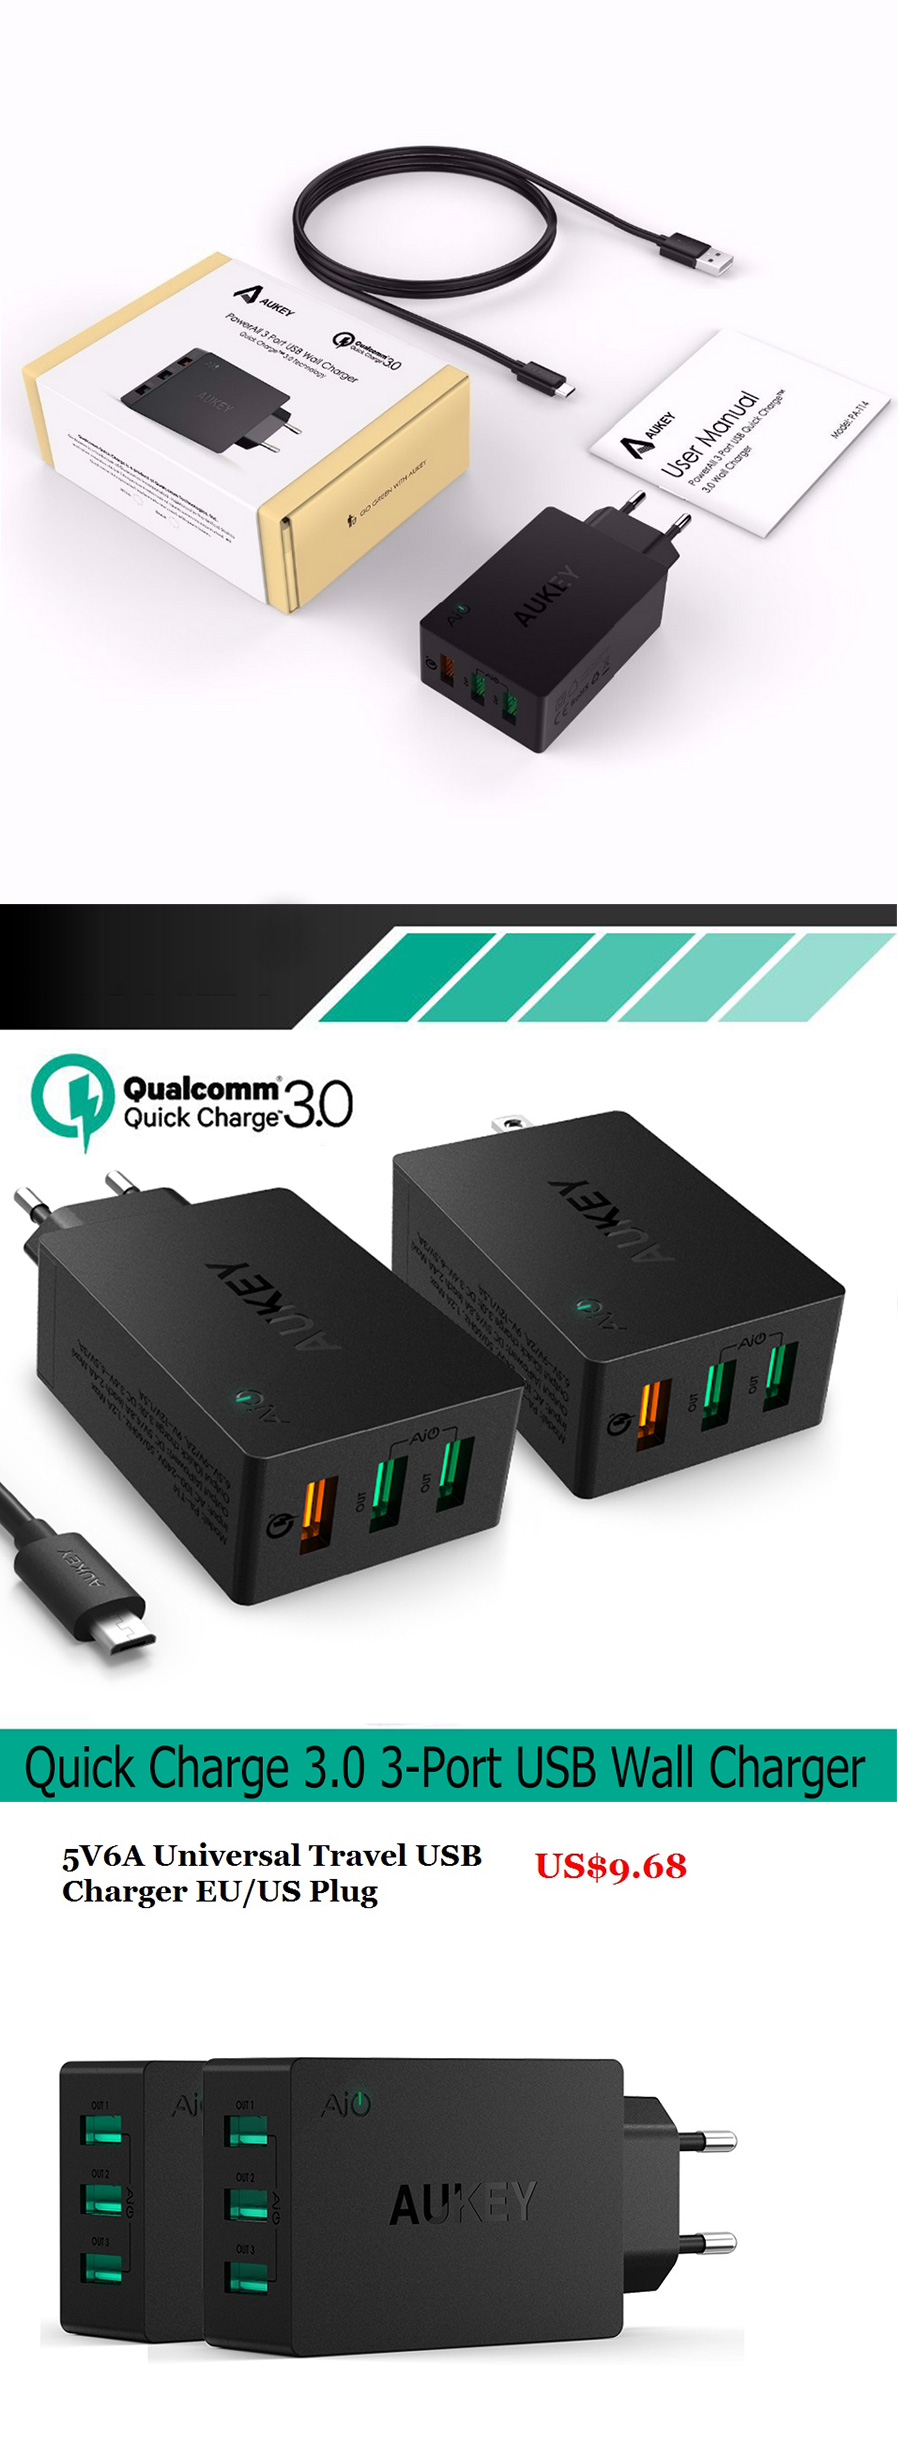 Aukey Pa T14 Quick Charge 3 0 Wall Charger Usb Port Fast Charging Travel Home Adaptor Turbo T9 Qualcomm 30 Original Please Use Your Devices Cable Aukeys Mfi Or Micro For The Best